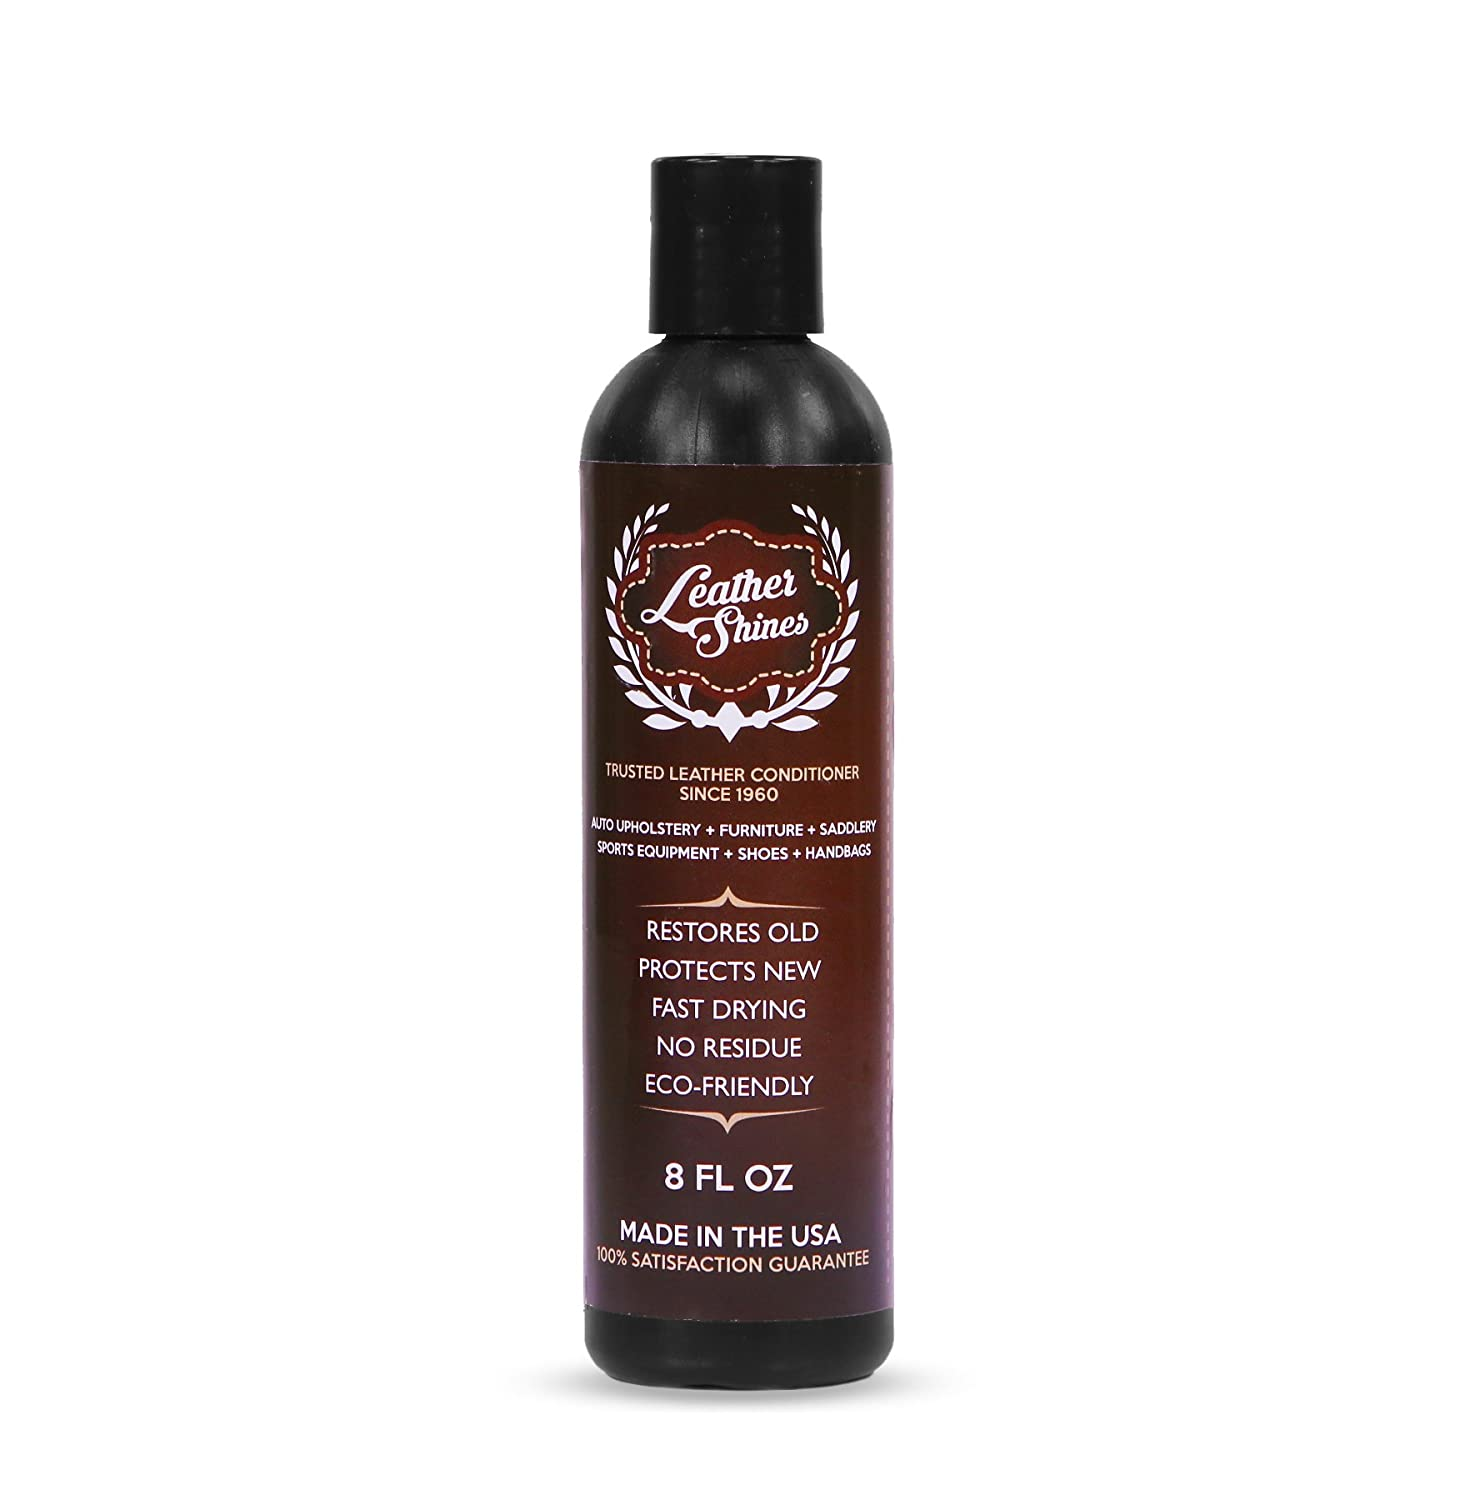 Amazon.com: Leather Shines Leather Conditioner - Leather Restorer ...